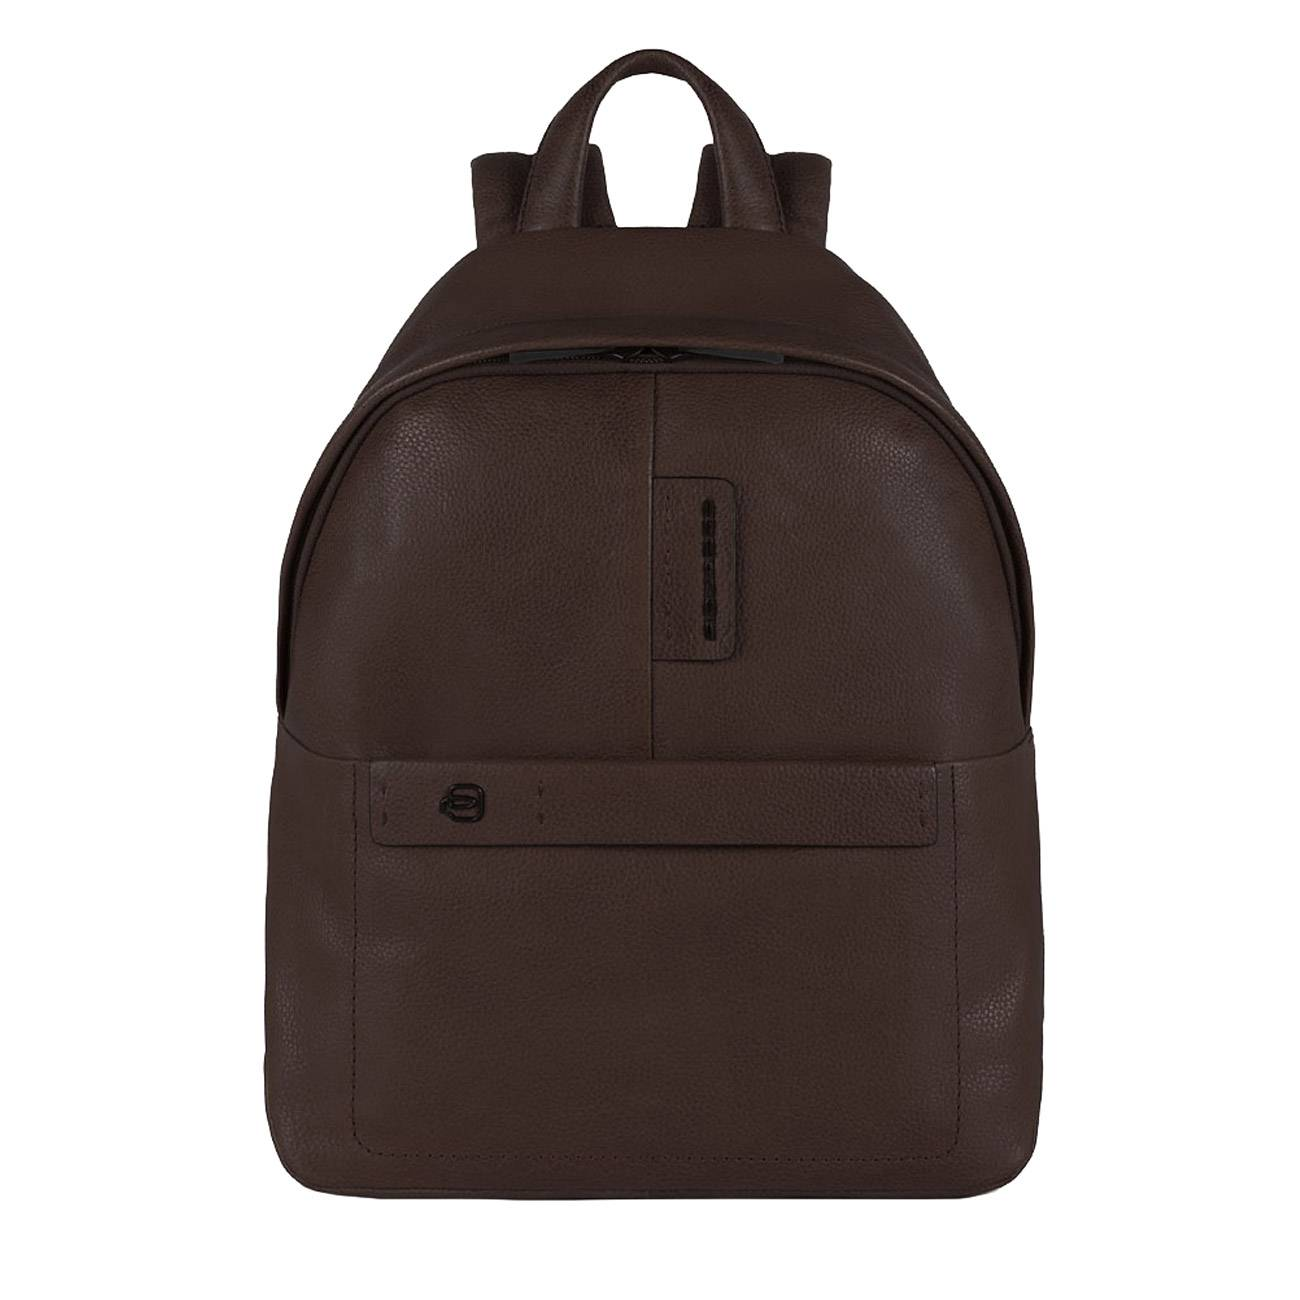 P15 PLUS COMPUTER BACKPACK